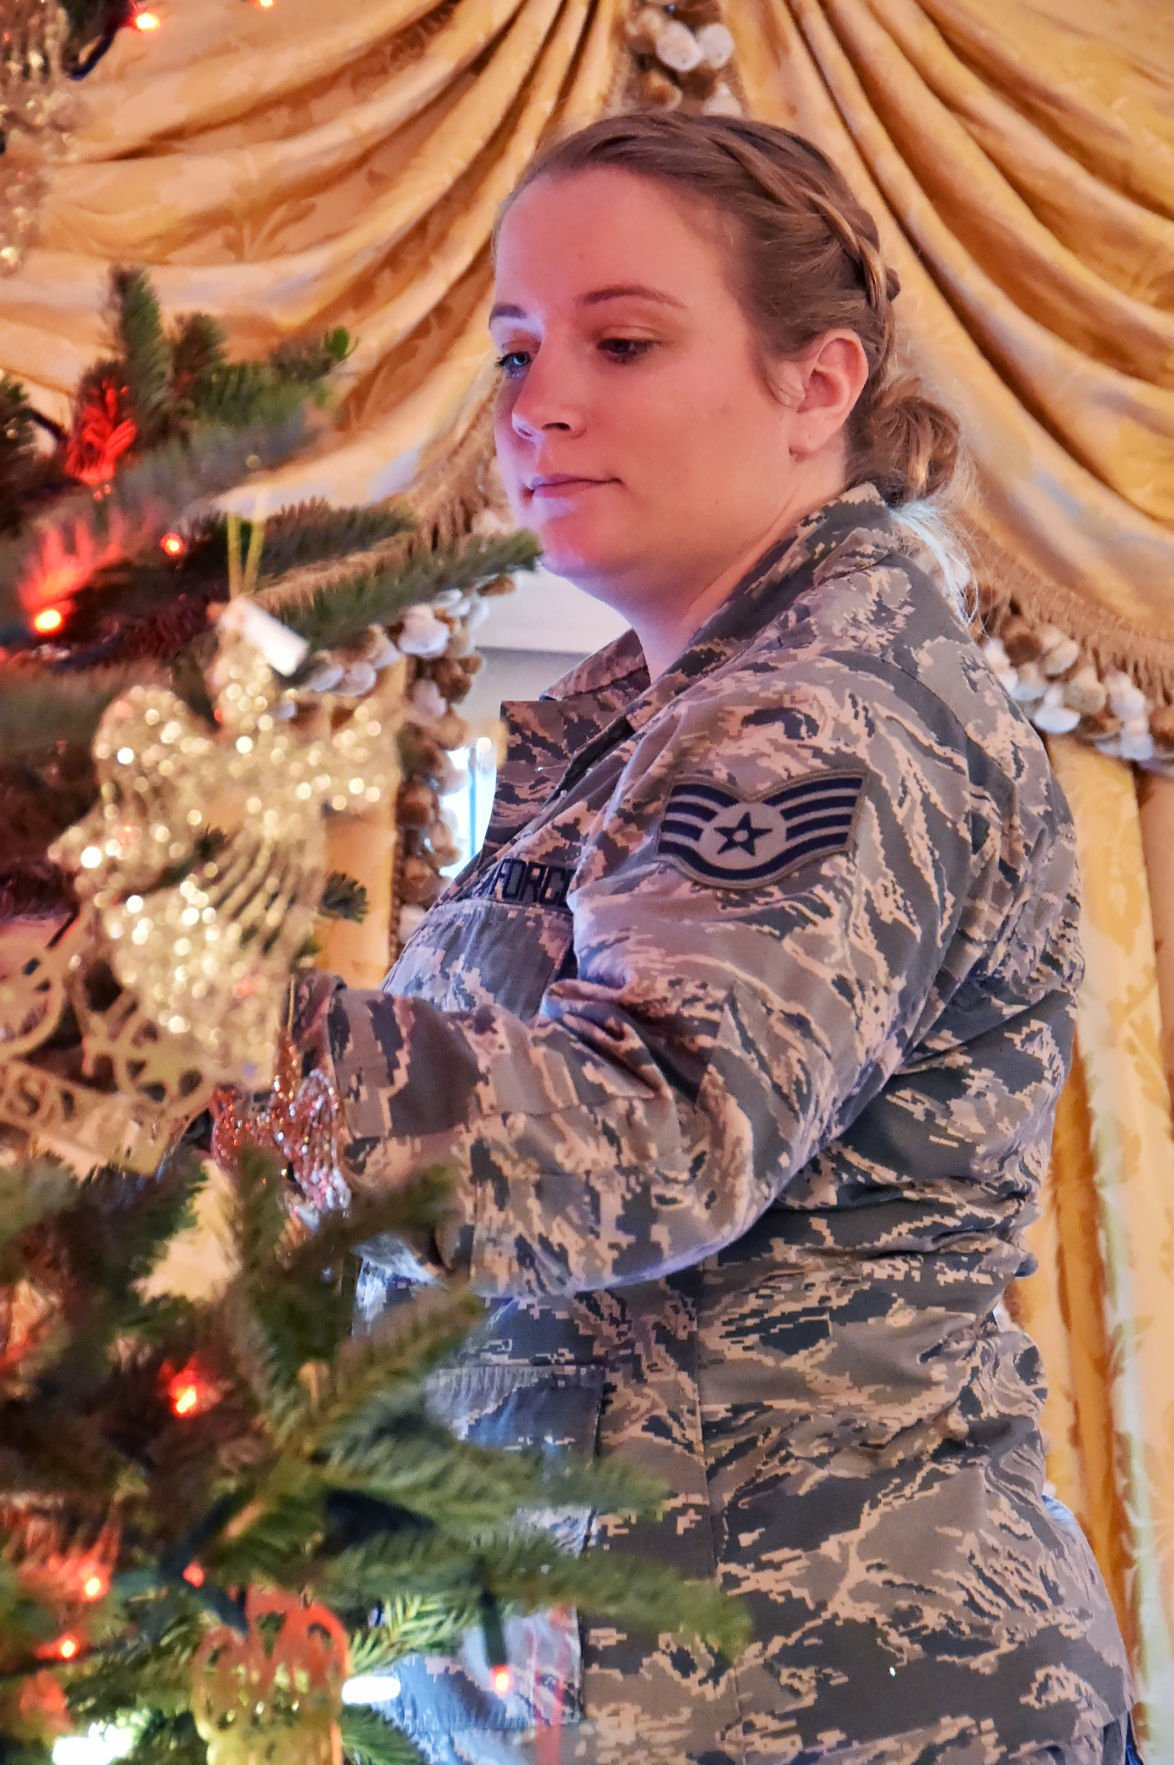 Gov. Evers attends 'Tribute to Our Troops' tree decoration